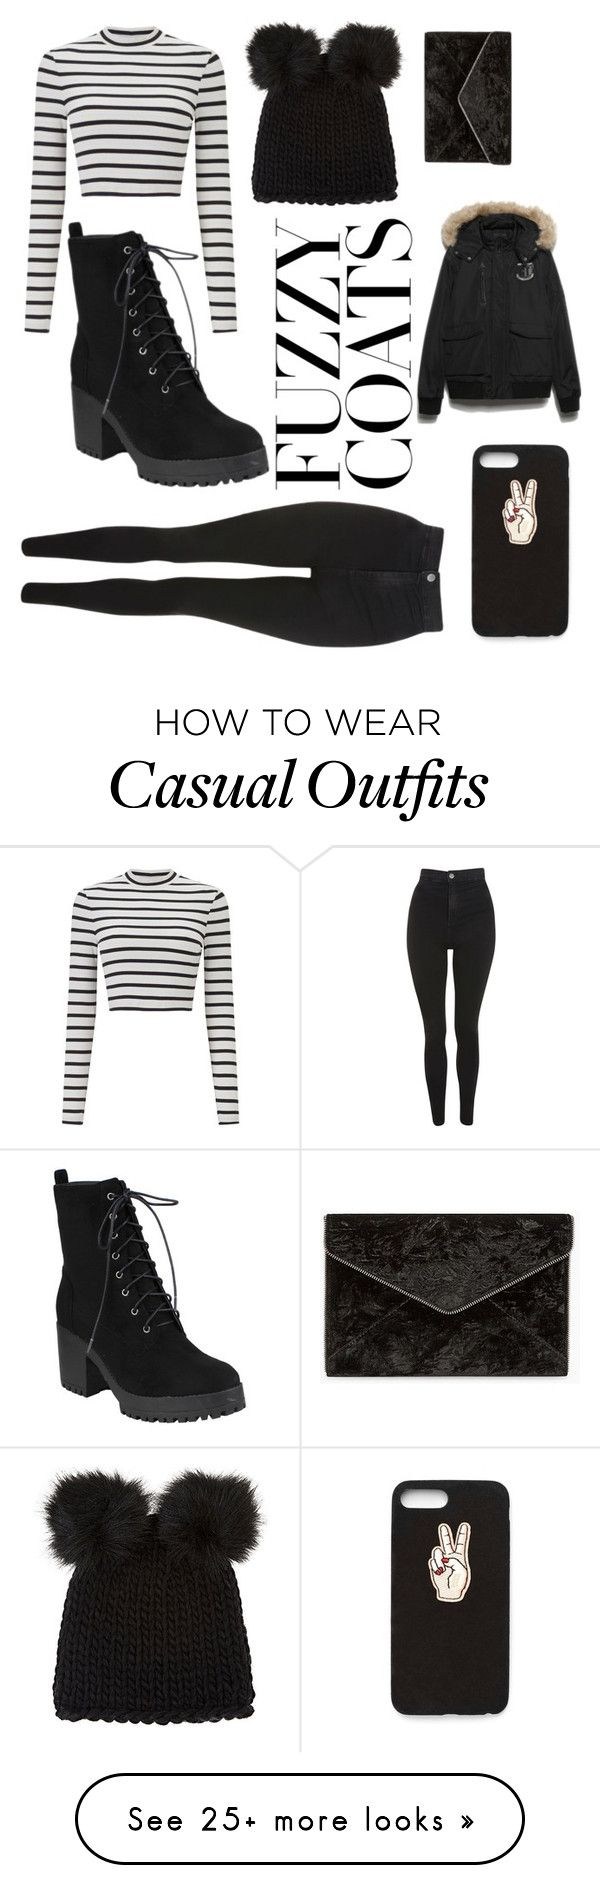 """""""Casual Winter Outfit"""" by emileyheart on Polyvore featuring Miss Selfridge, Topshop, Barneys New York, Nasty Gal and Rebecca Minkoff"""